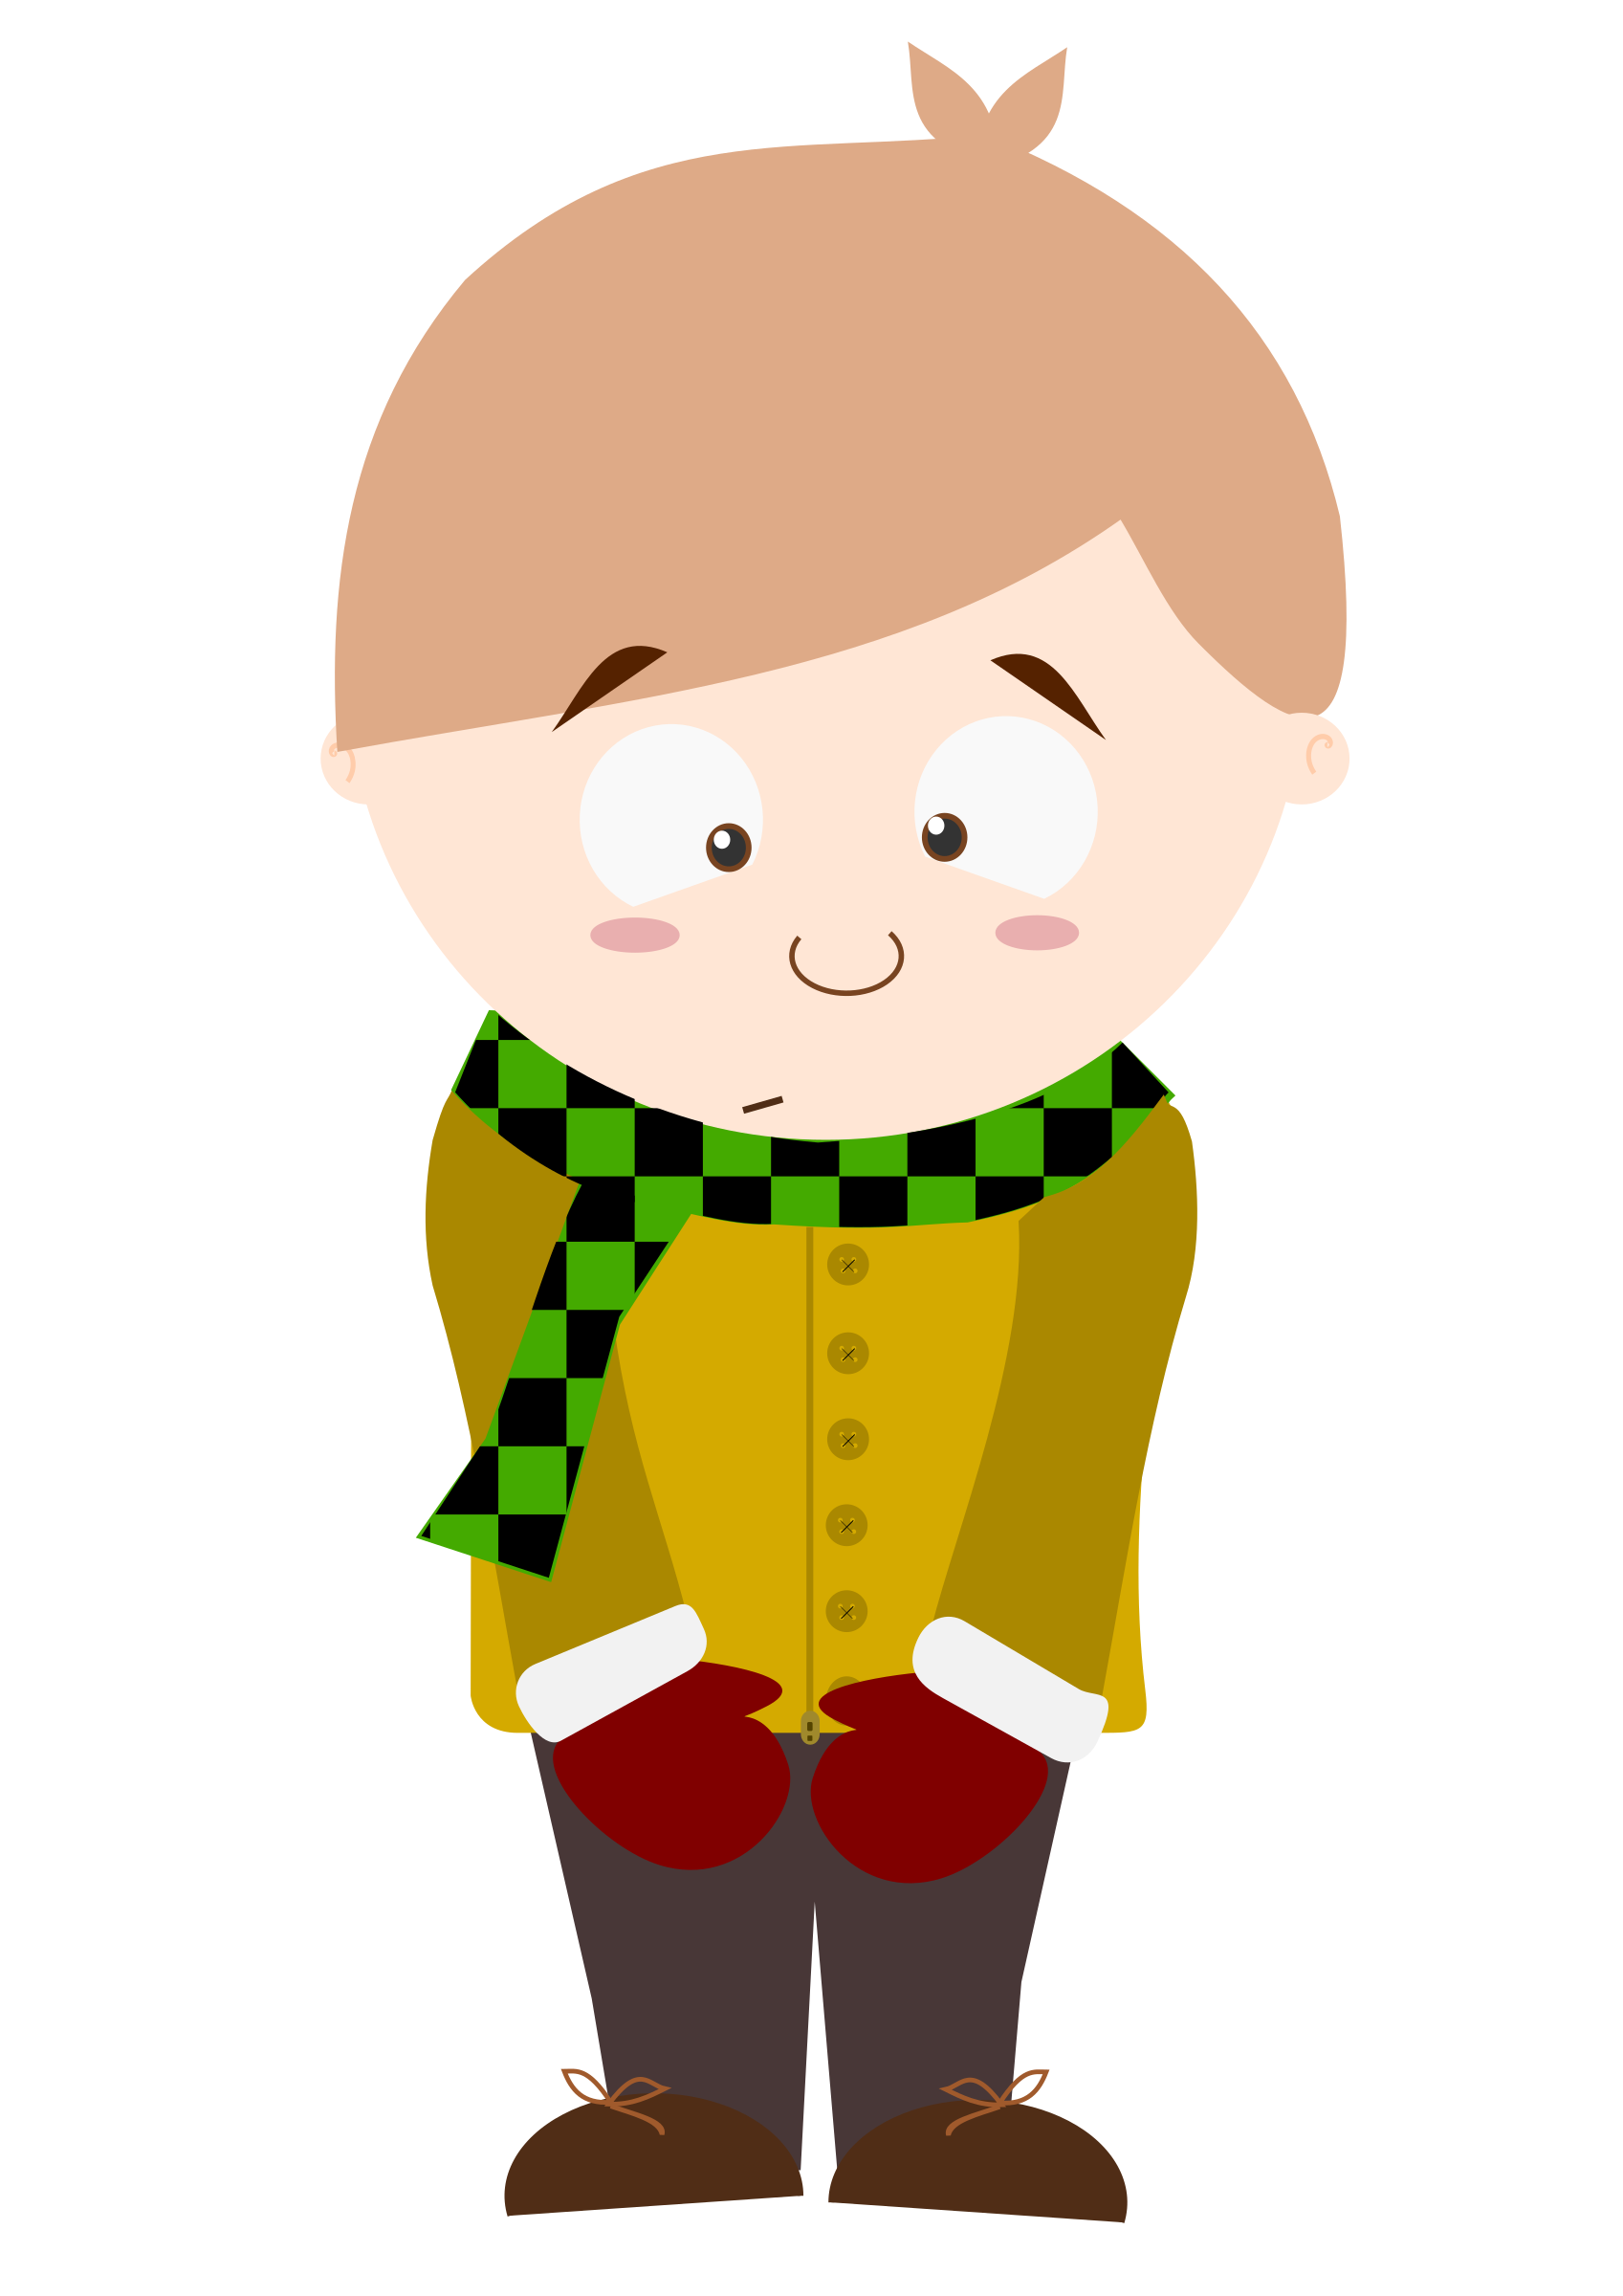 Kind clipart kind kid. Cartoon shy big image